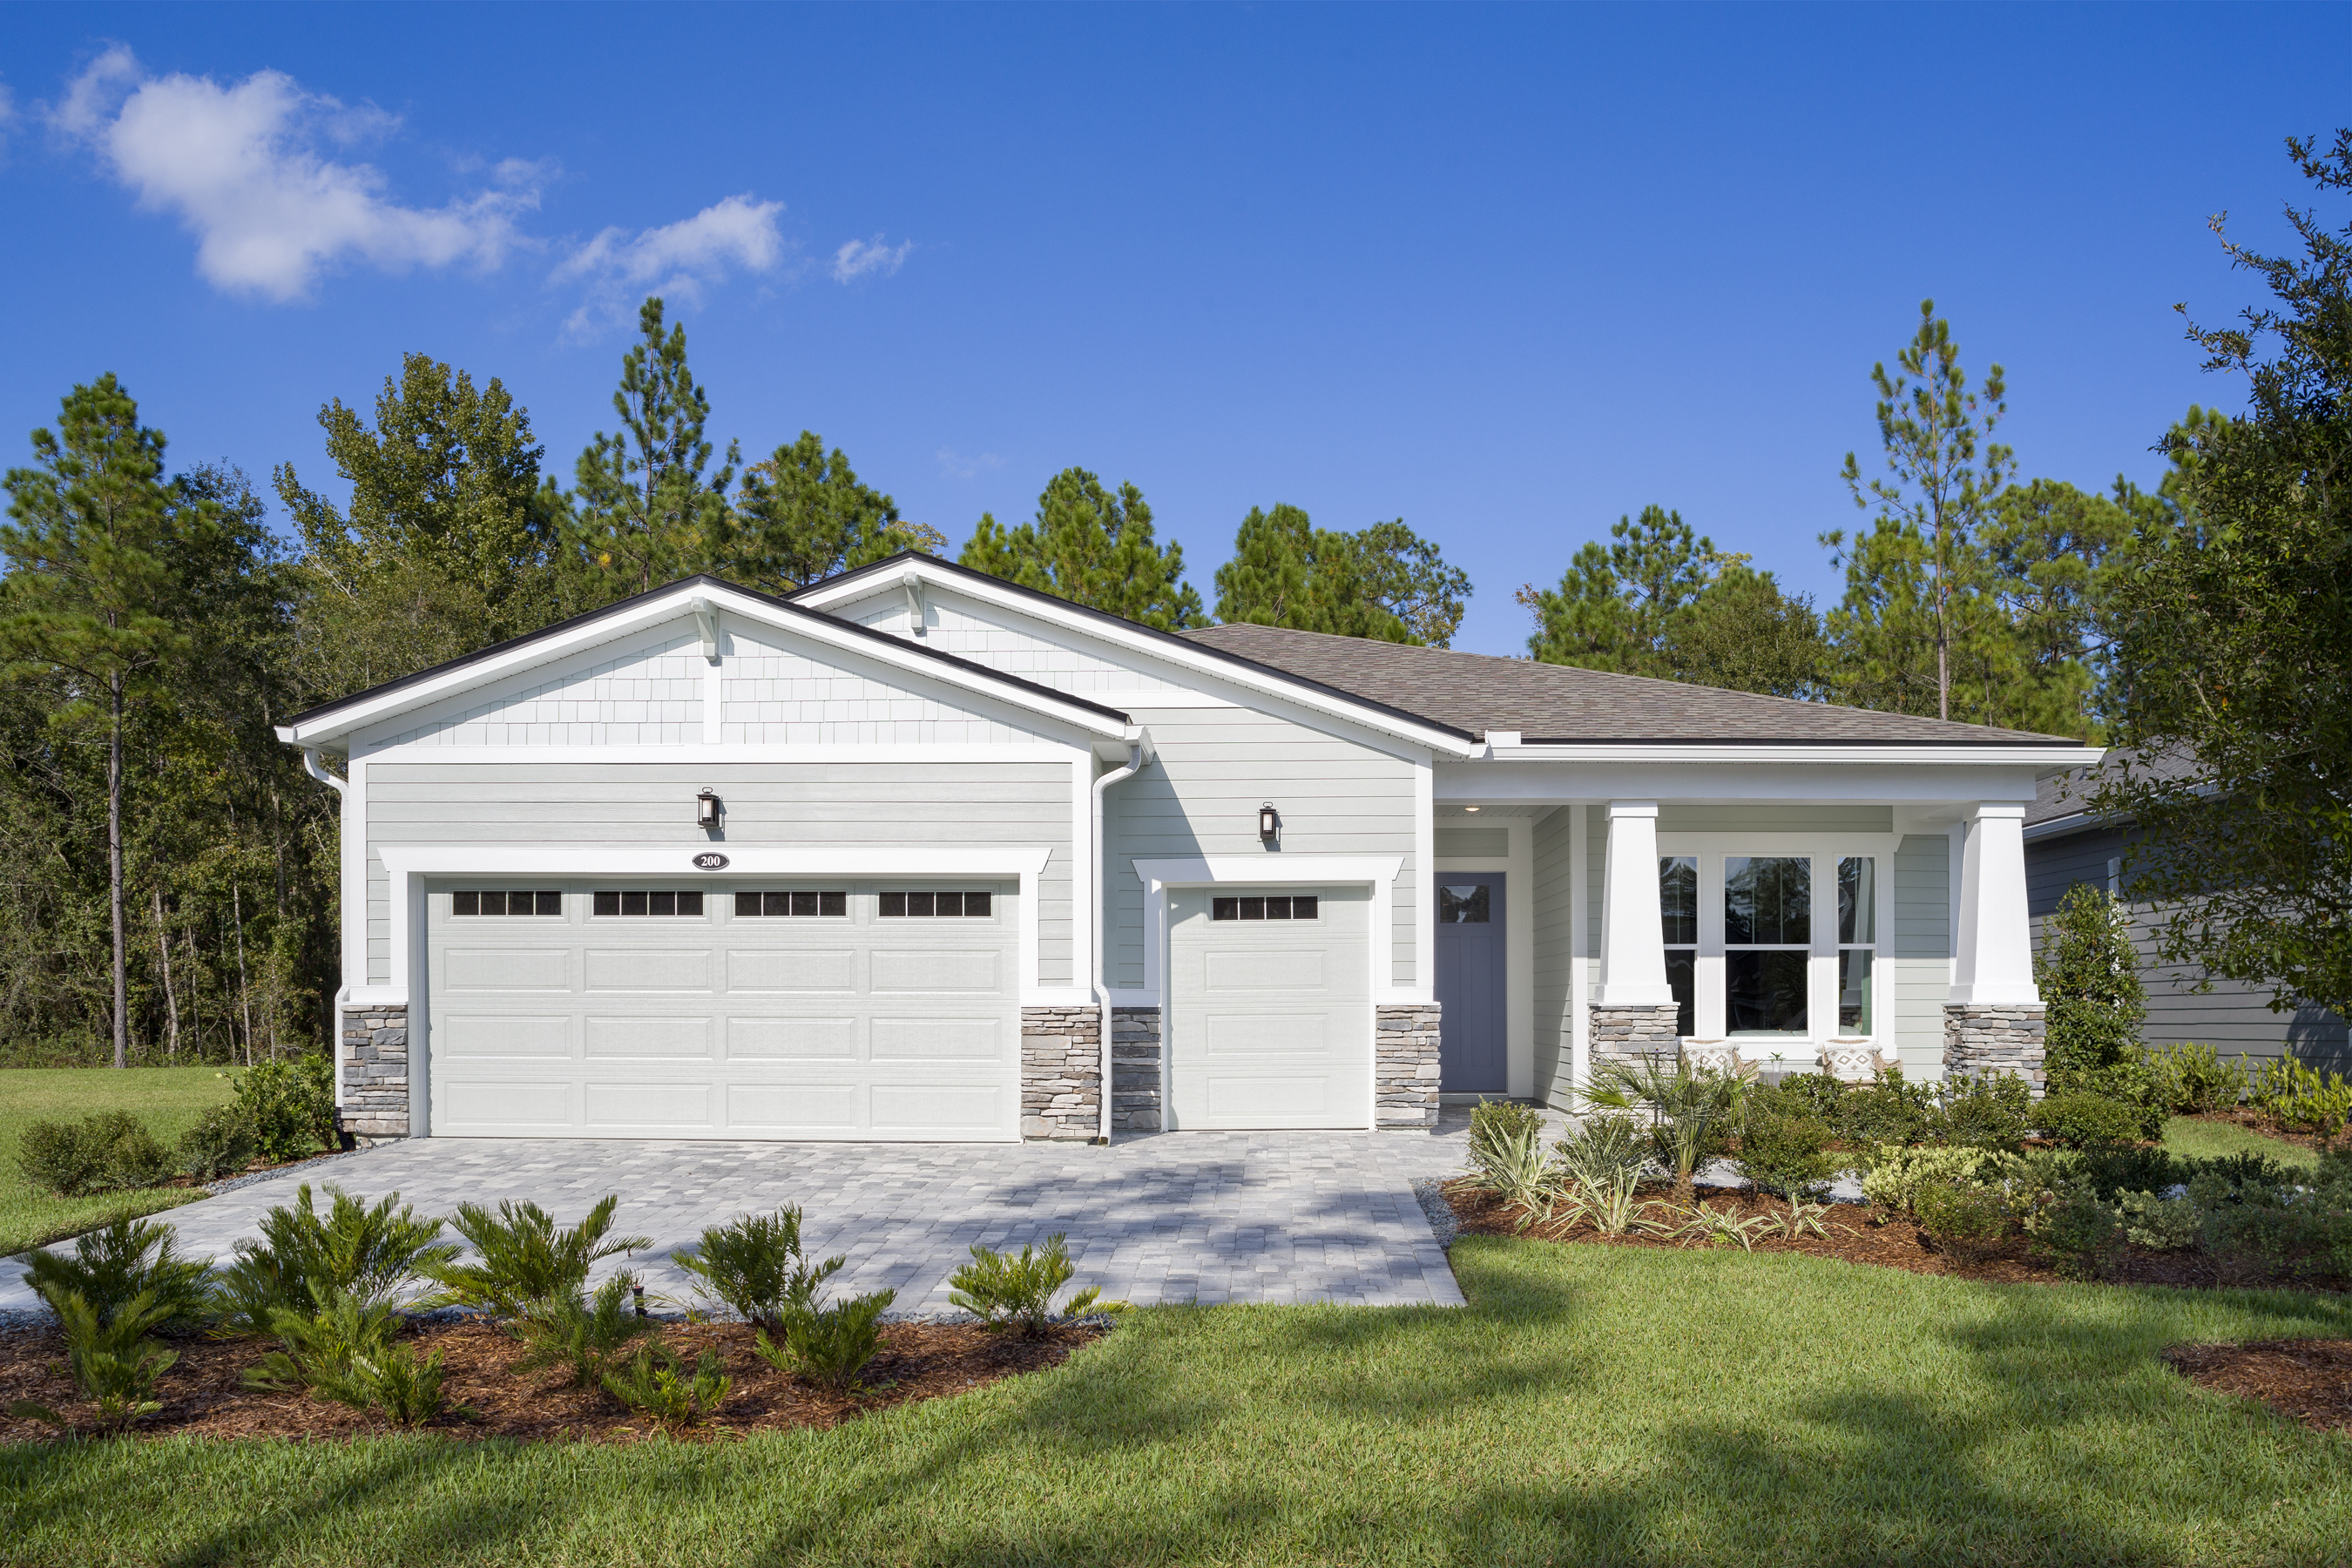 Harbor Plan Elevation Front at RiverTown - WaterSong in St. Johns Florida by Mattamy Homes